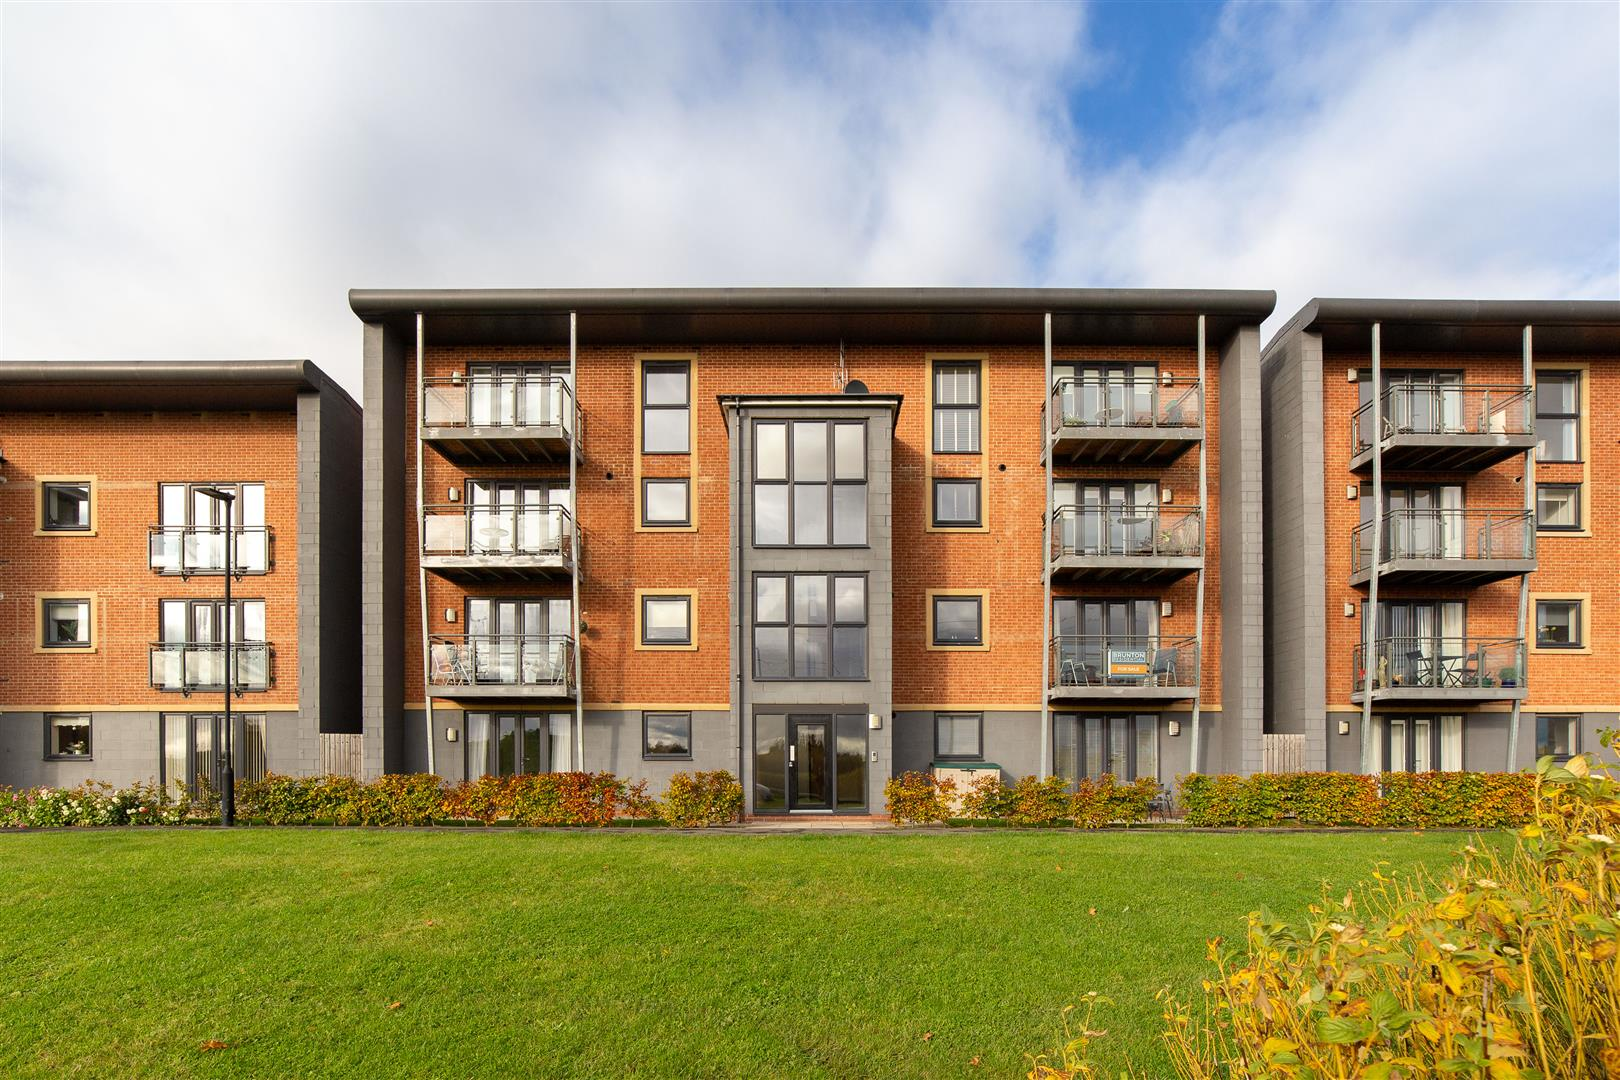 2 bed flat for sale in Newcastle Upon Tyne, NE13 9BP, NE13